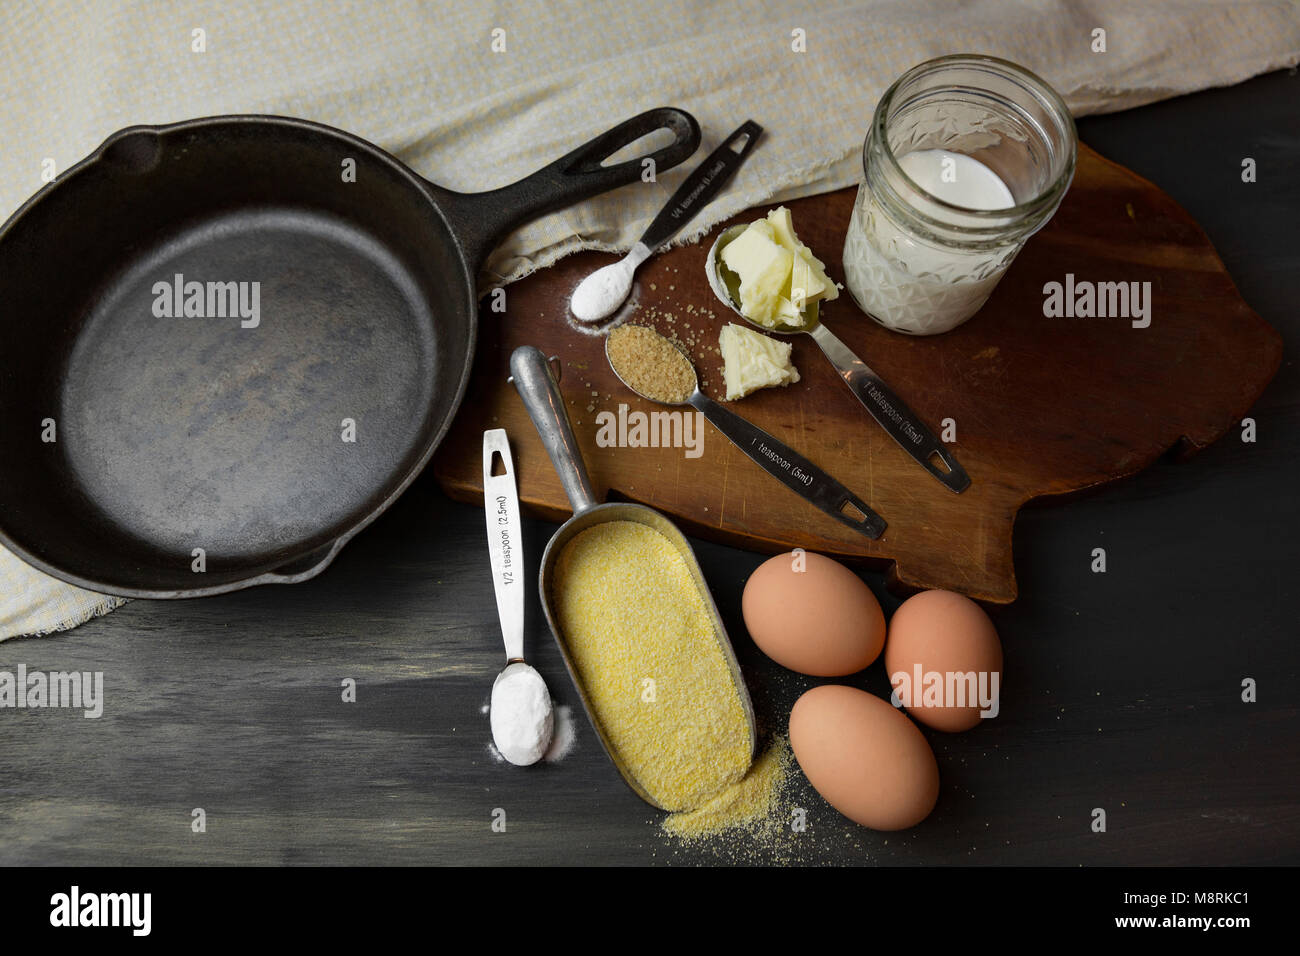 High angle view of kitchen utensils and ingredients on table - Stock Image